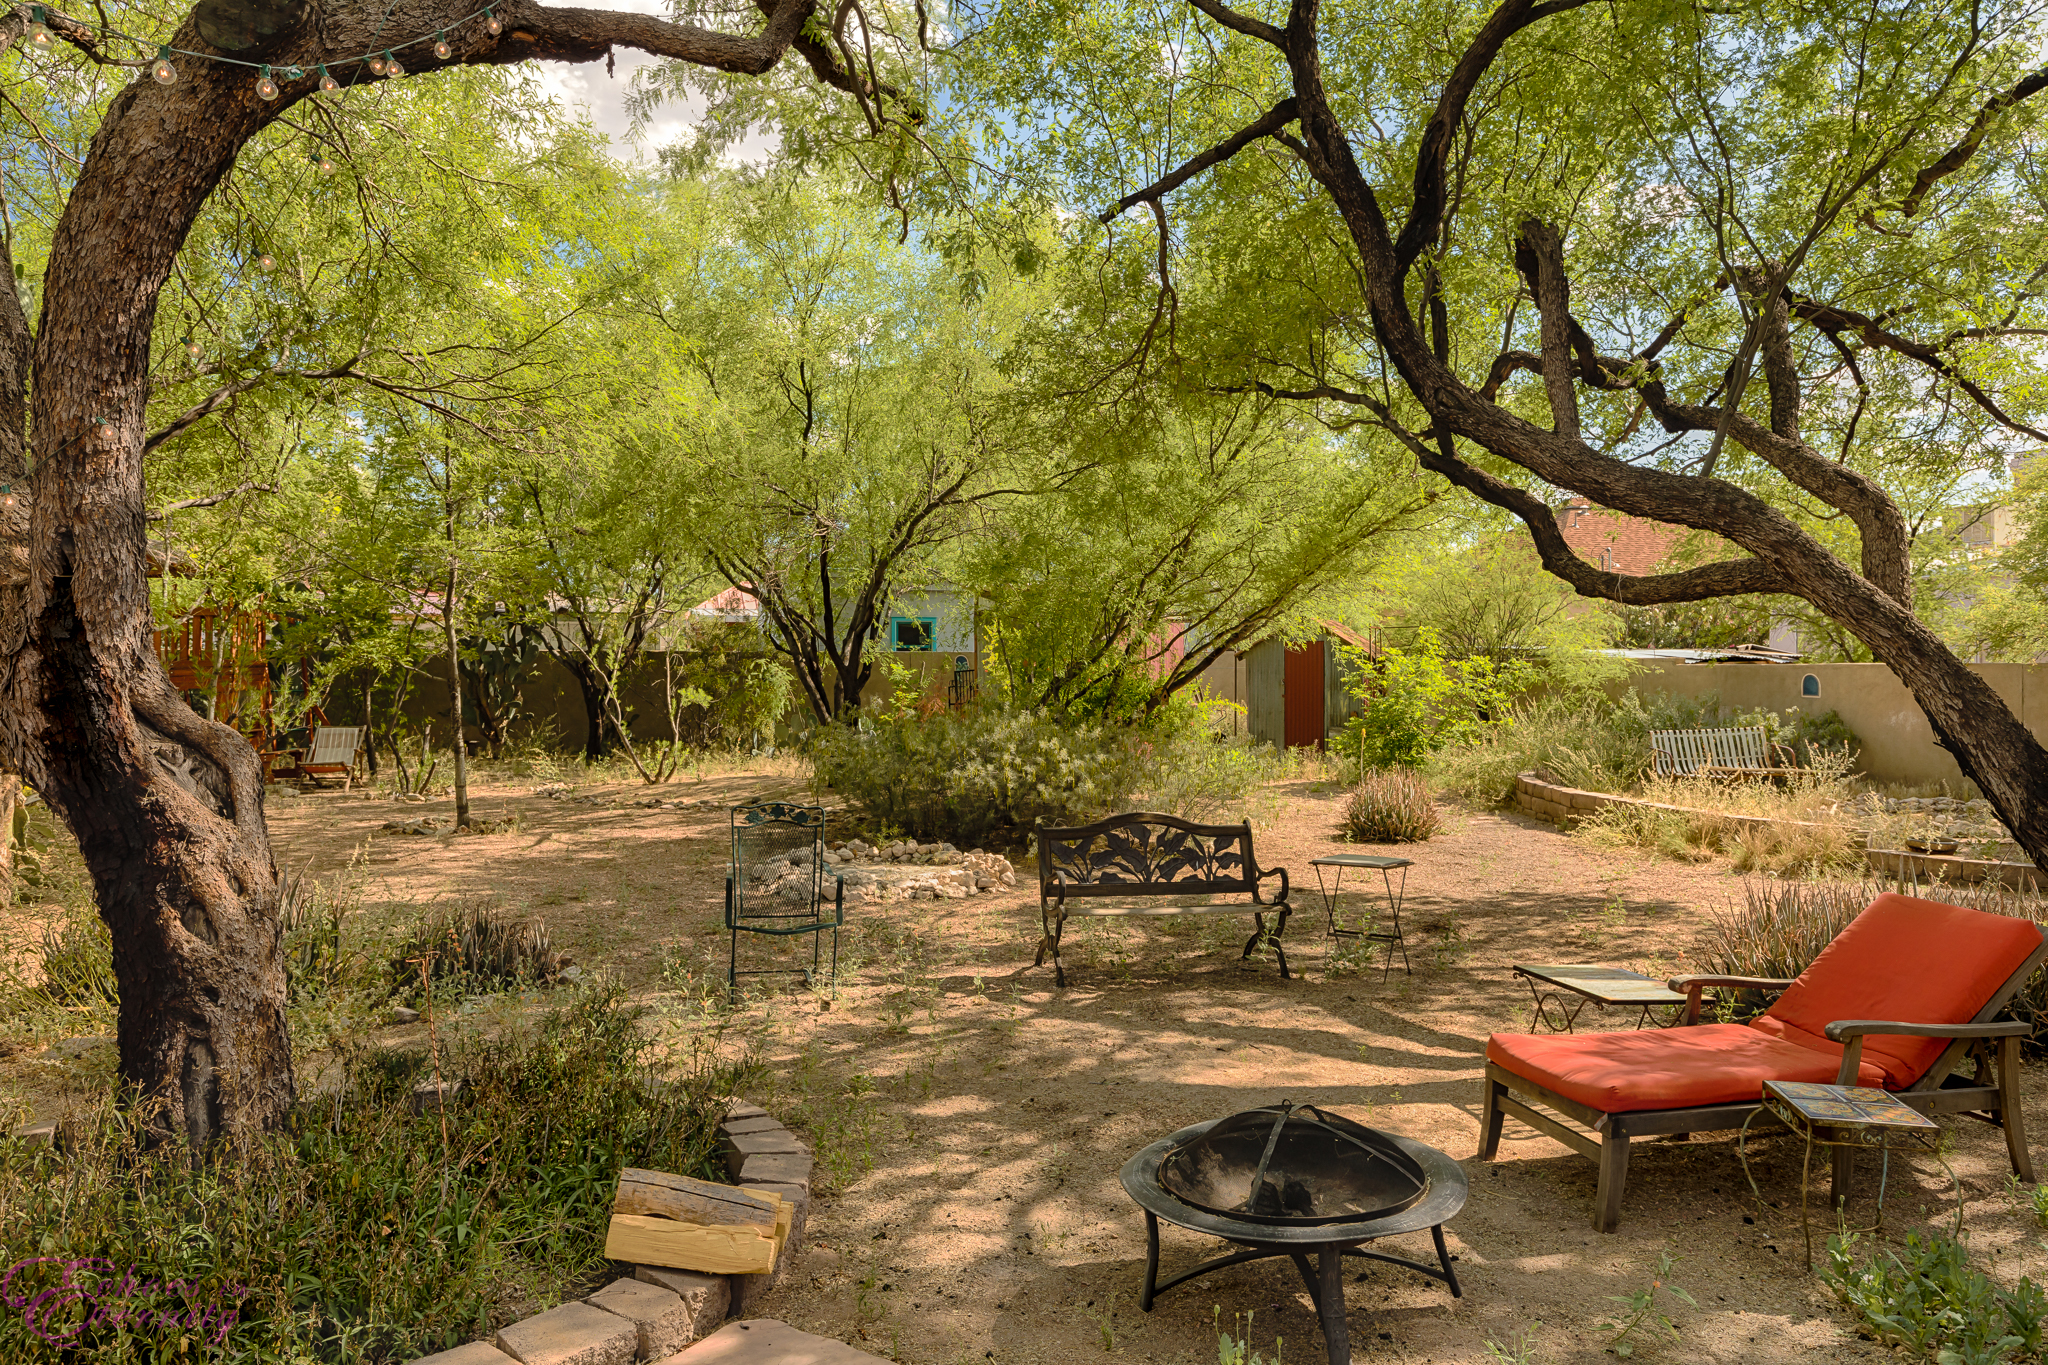 Professional Photos Tucson Arizona Rental Real Estate Photography Airbnb VRBO 09.jpg